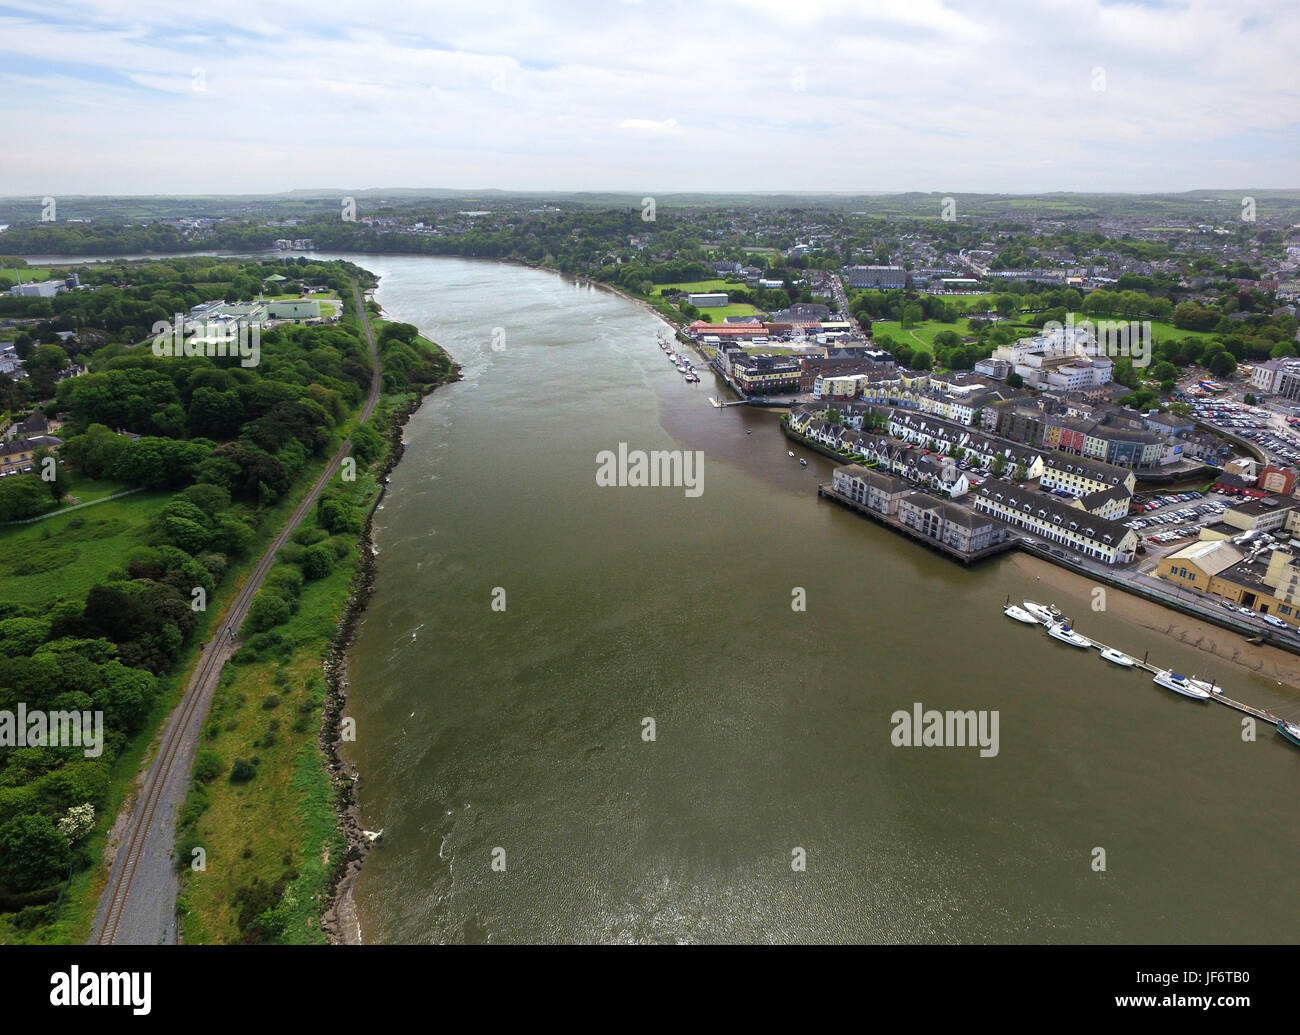 Aerial view of the river Suir and historic Waterford, Ireland. - Stock Image